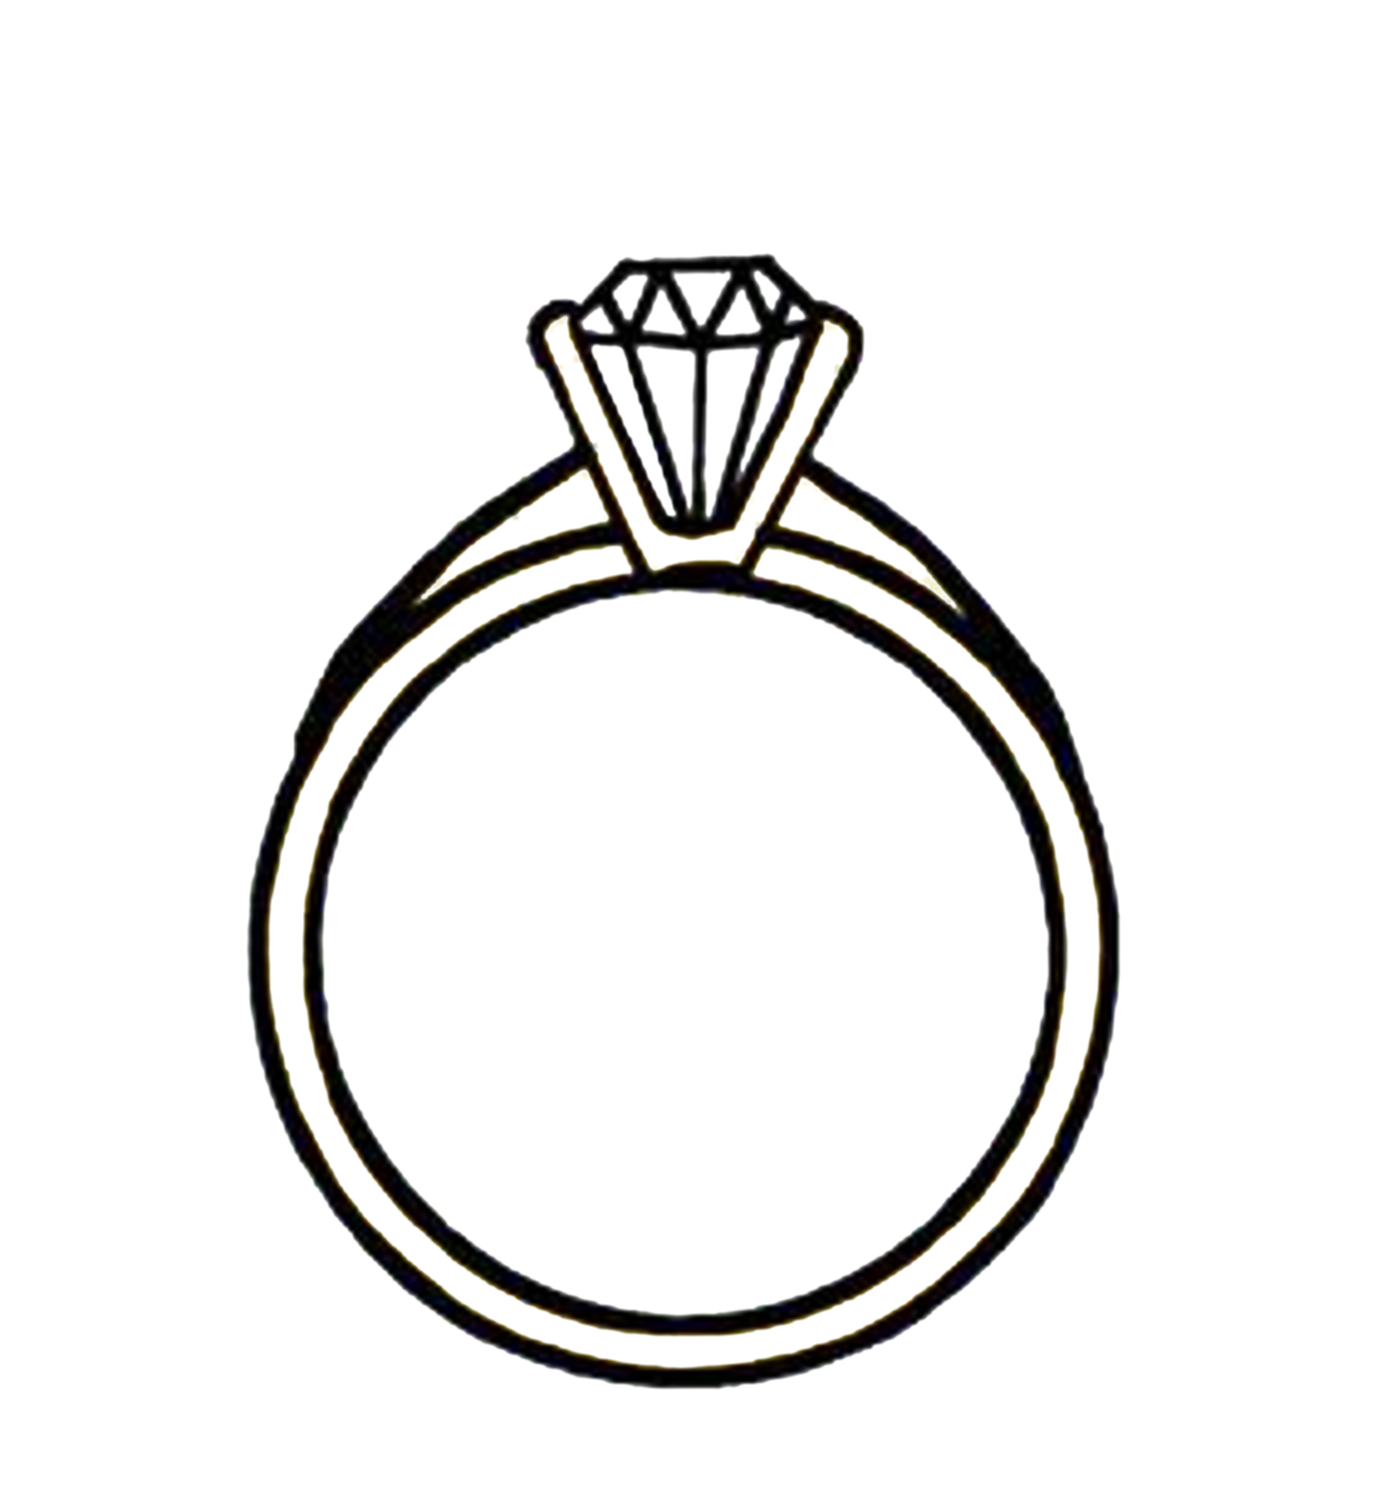 Ring clipart one ring. Clip art silhouette diamond